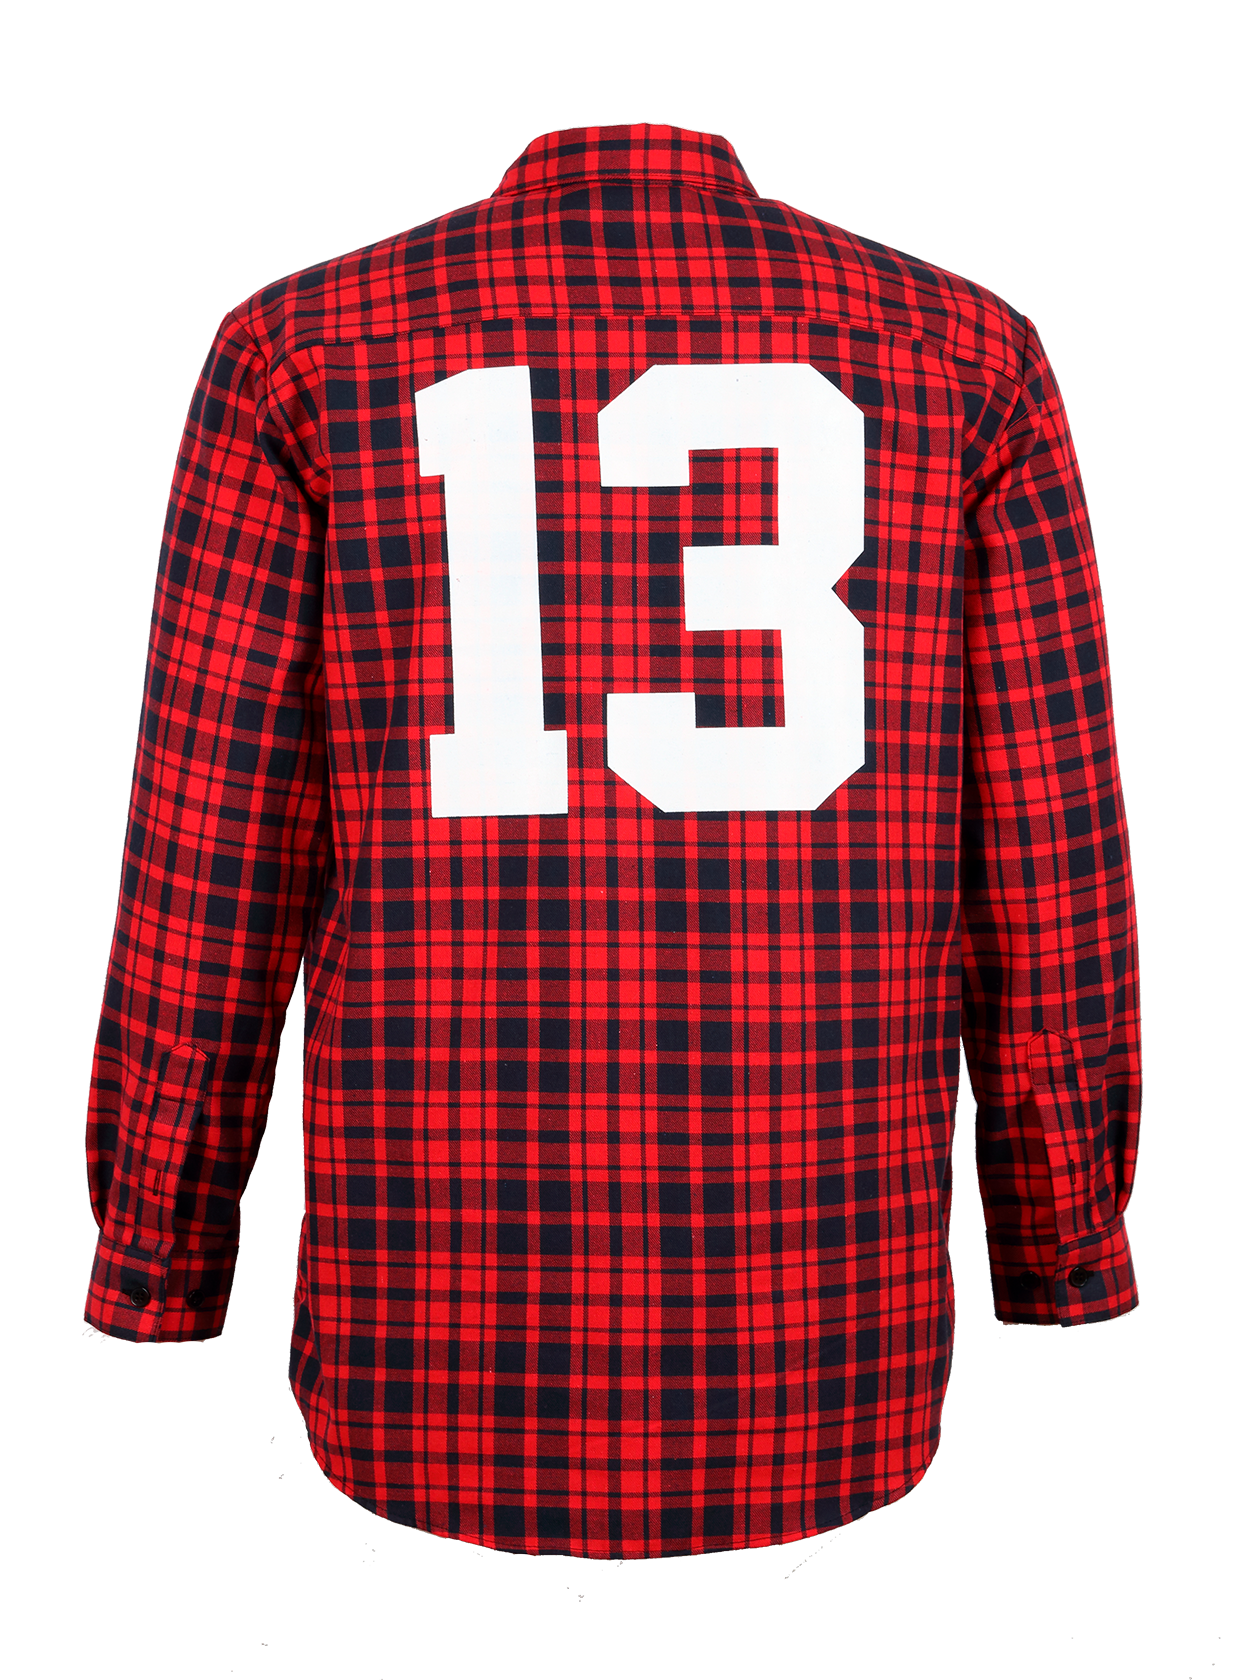 Mens shirt BS13Mens shirt by Black Star Wear. Straight cut, chest pockets on bottons. Big white print 13 on the back. 100% natural cotton. Available in blacknred.<br><br>size: M<br>color: Red<br>gender: male